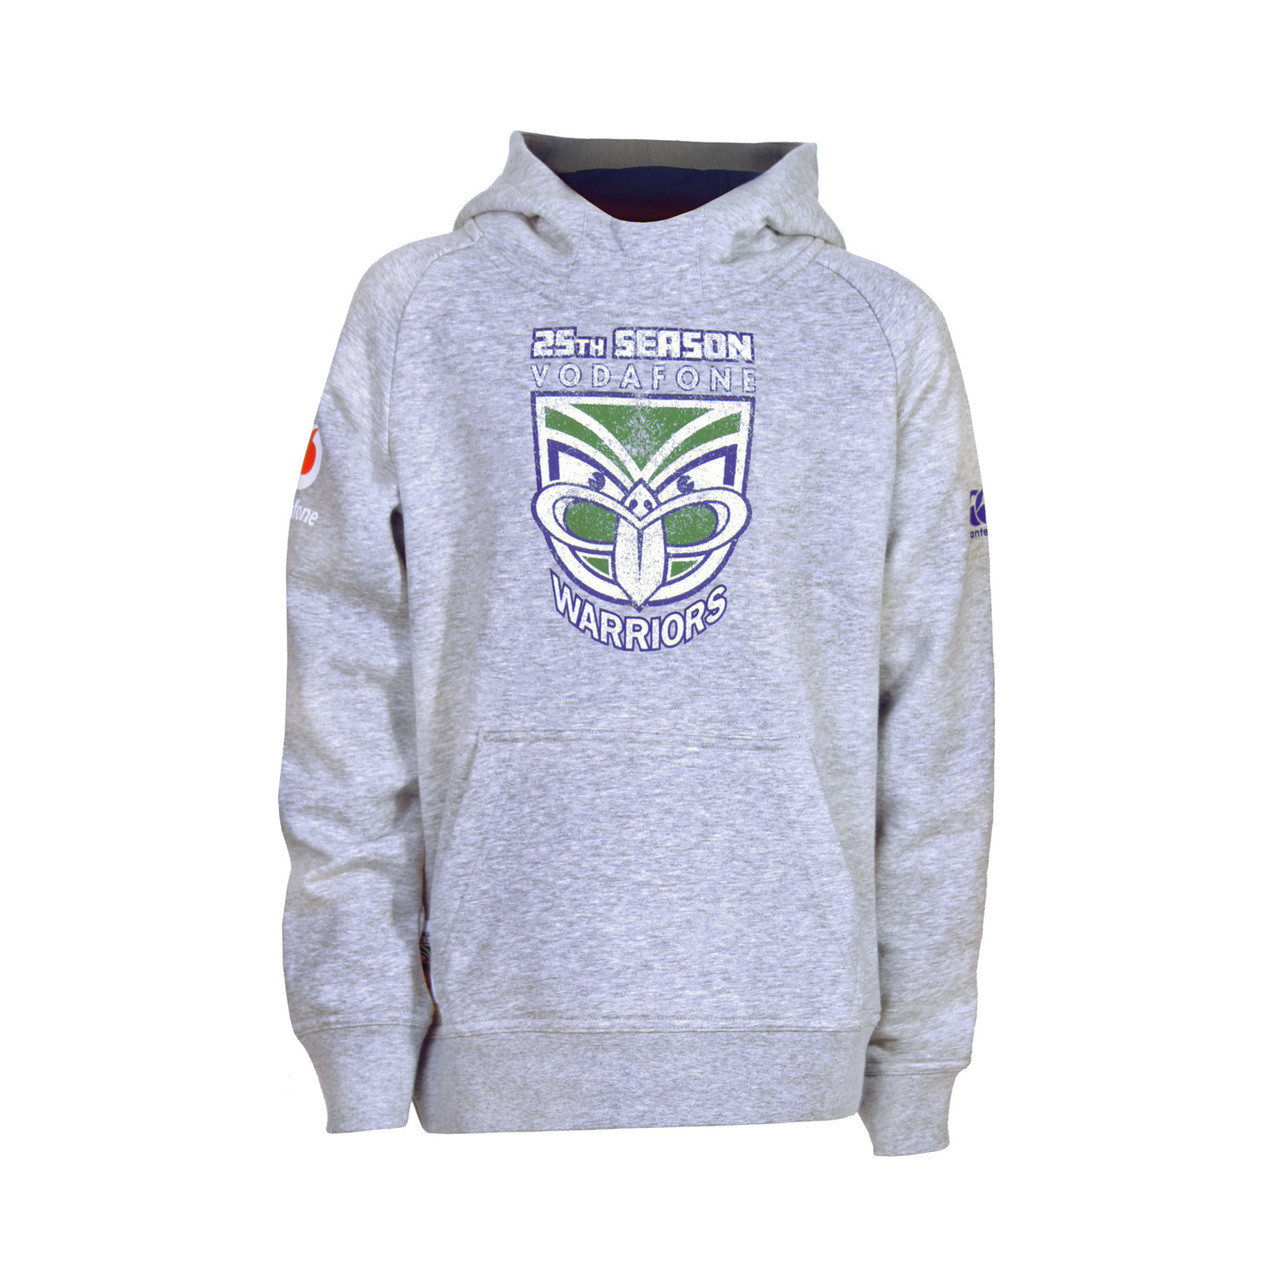 db08edf8 2019 Vodafone Warriors CCC 25th Season Raglan Hoodie - Kids ...